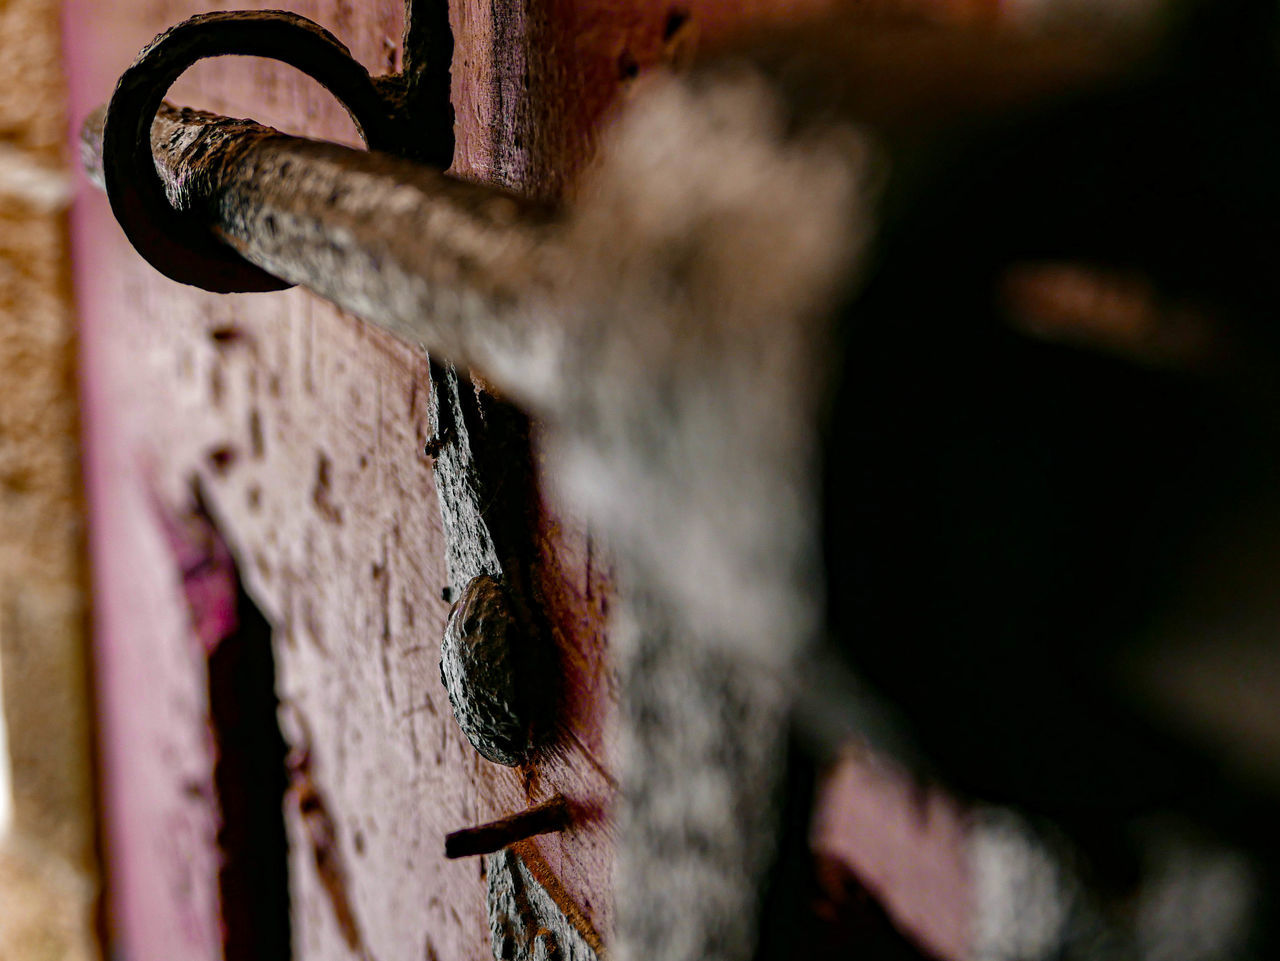 selective focus, close-up, no people, metal, day, rusty, old, wood - material, outdoors, focus on foreground, nature, textured, damaged, safety, weathered, run-down, detail, pattern, sunlight